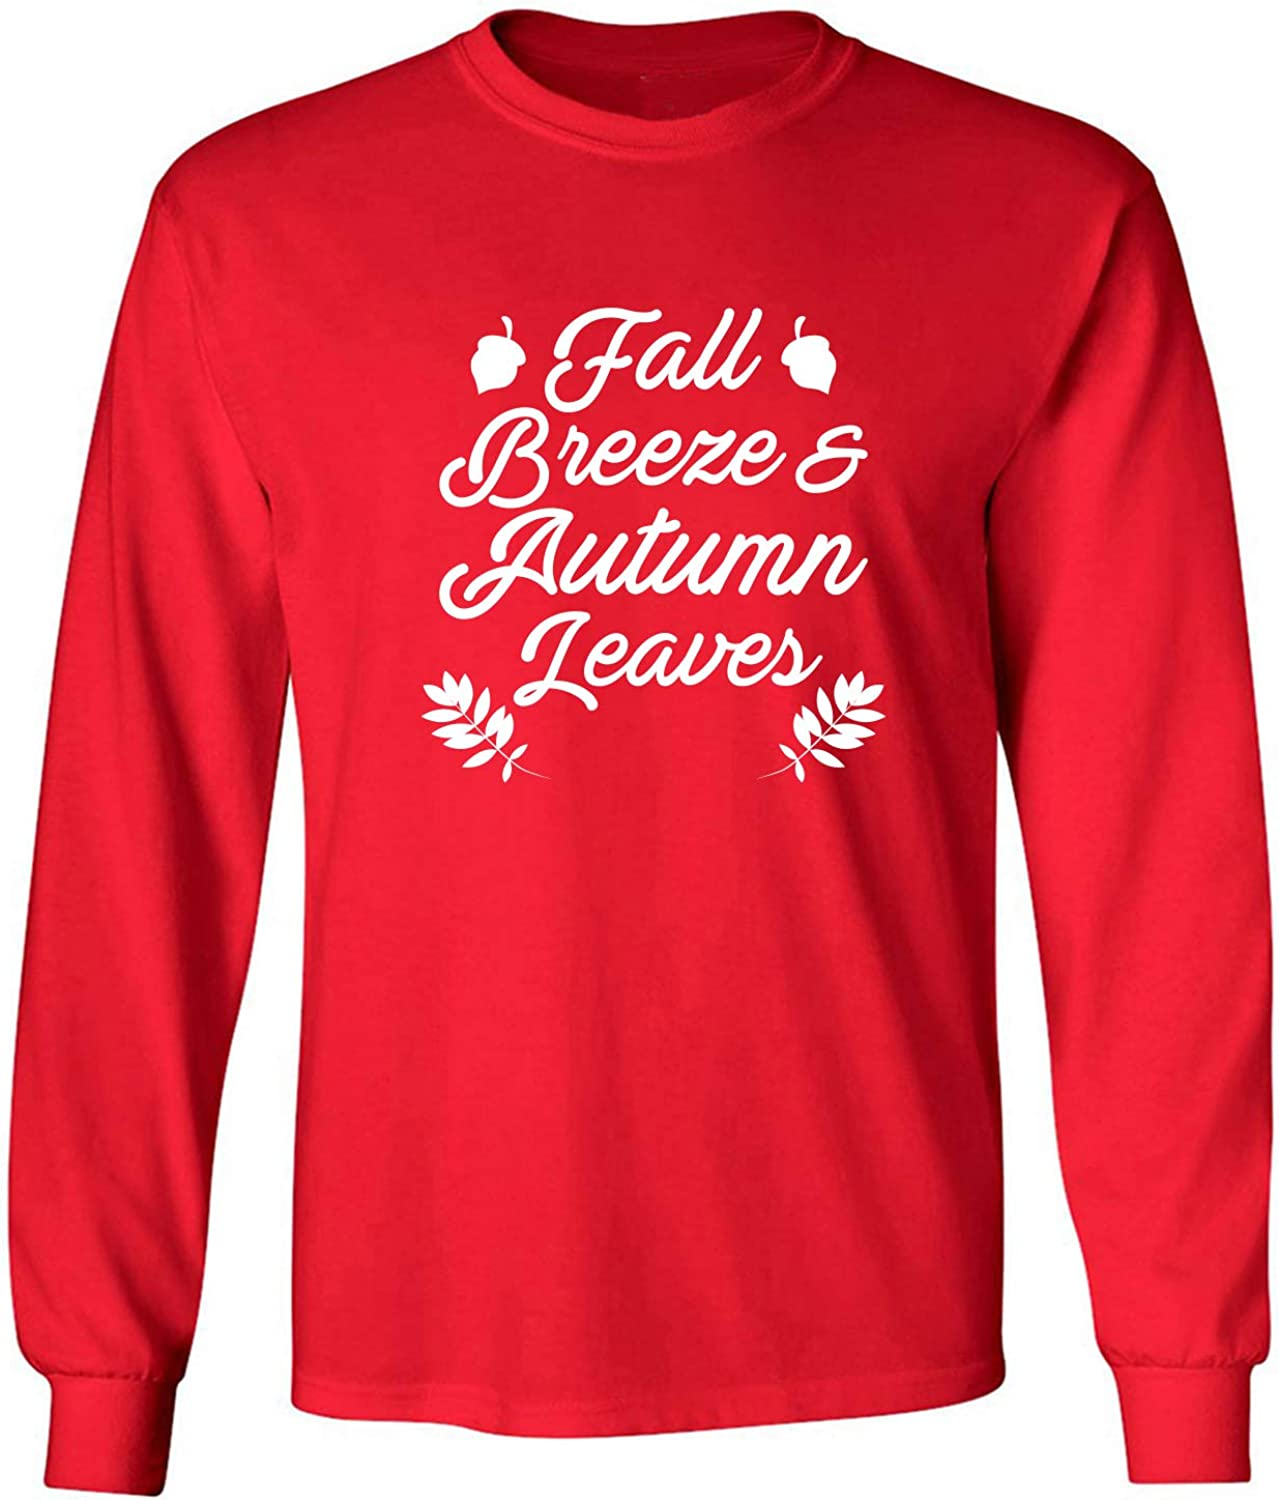 Fall Breeze & Autumn Leaves Adult Long Sleeve T-Shirt in Red - XXXX-Large